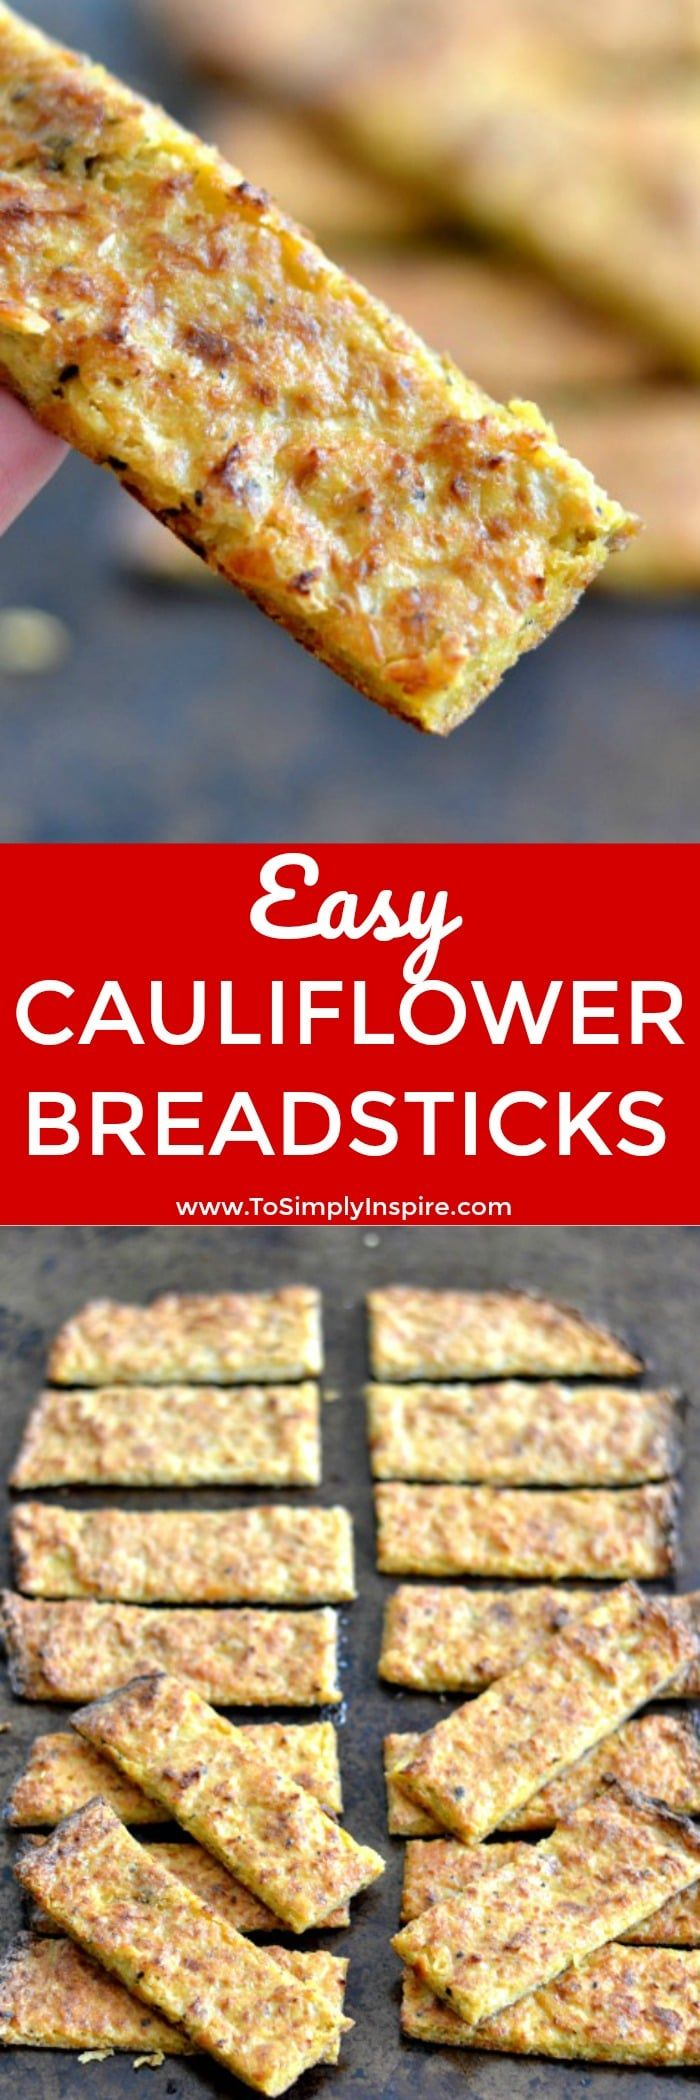 These Cauliflower Breadsticks are a wonderful little healthy, low carb option to add to any meal or as an appetizer.